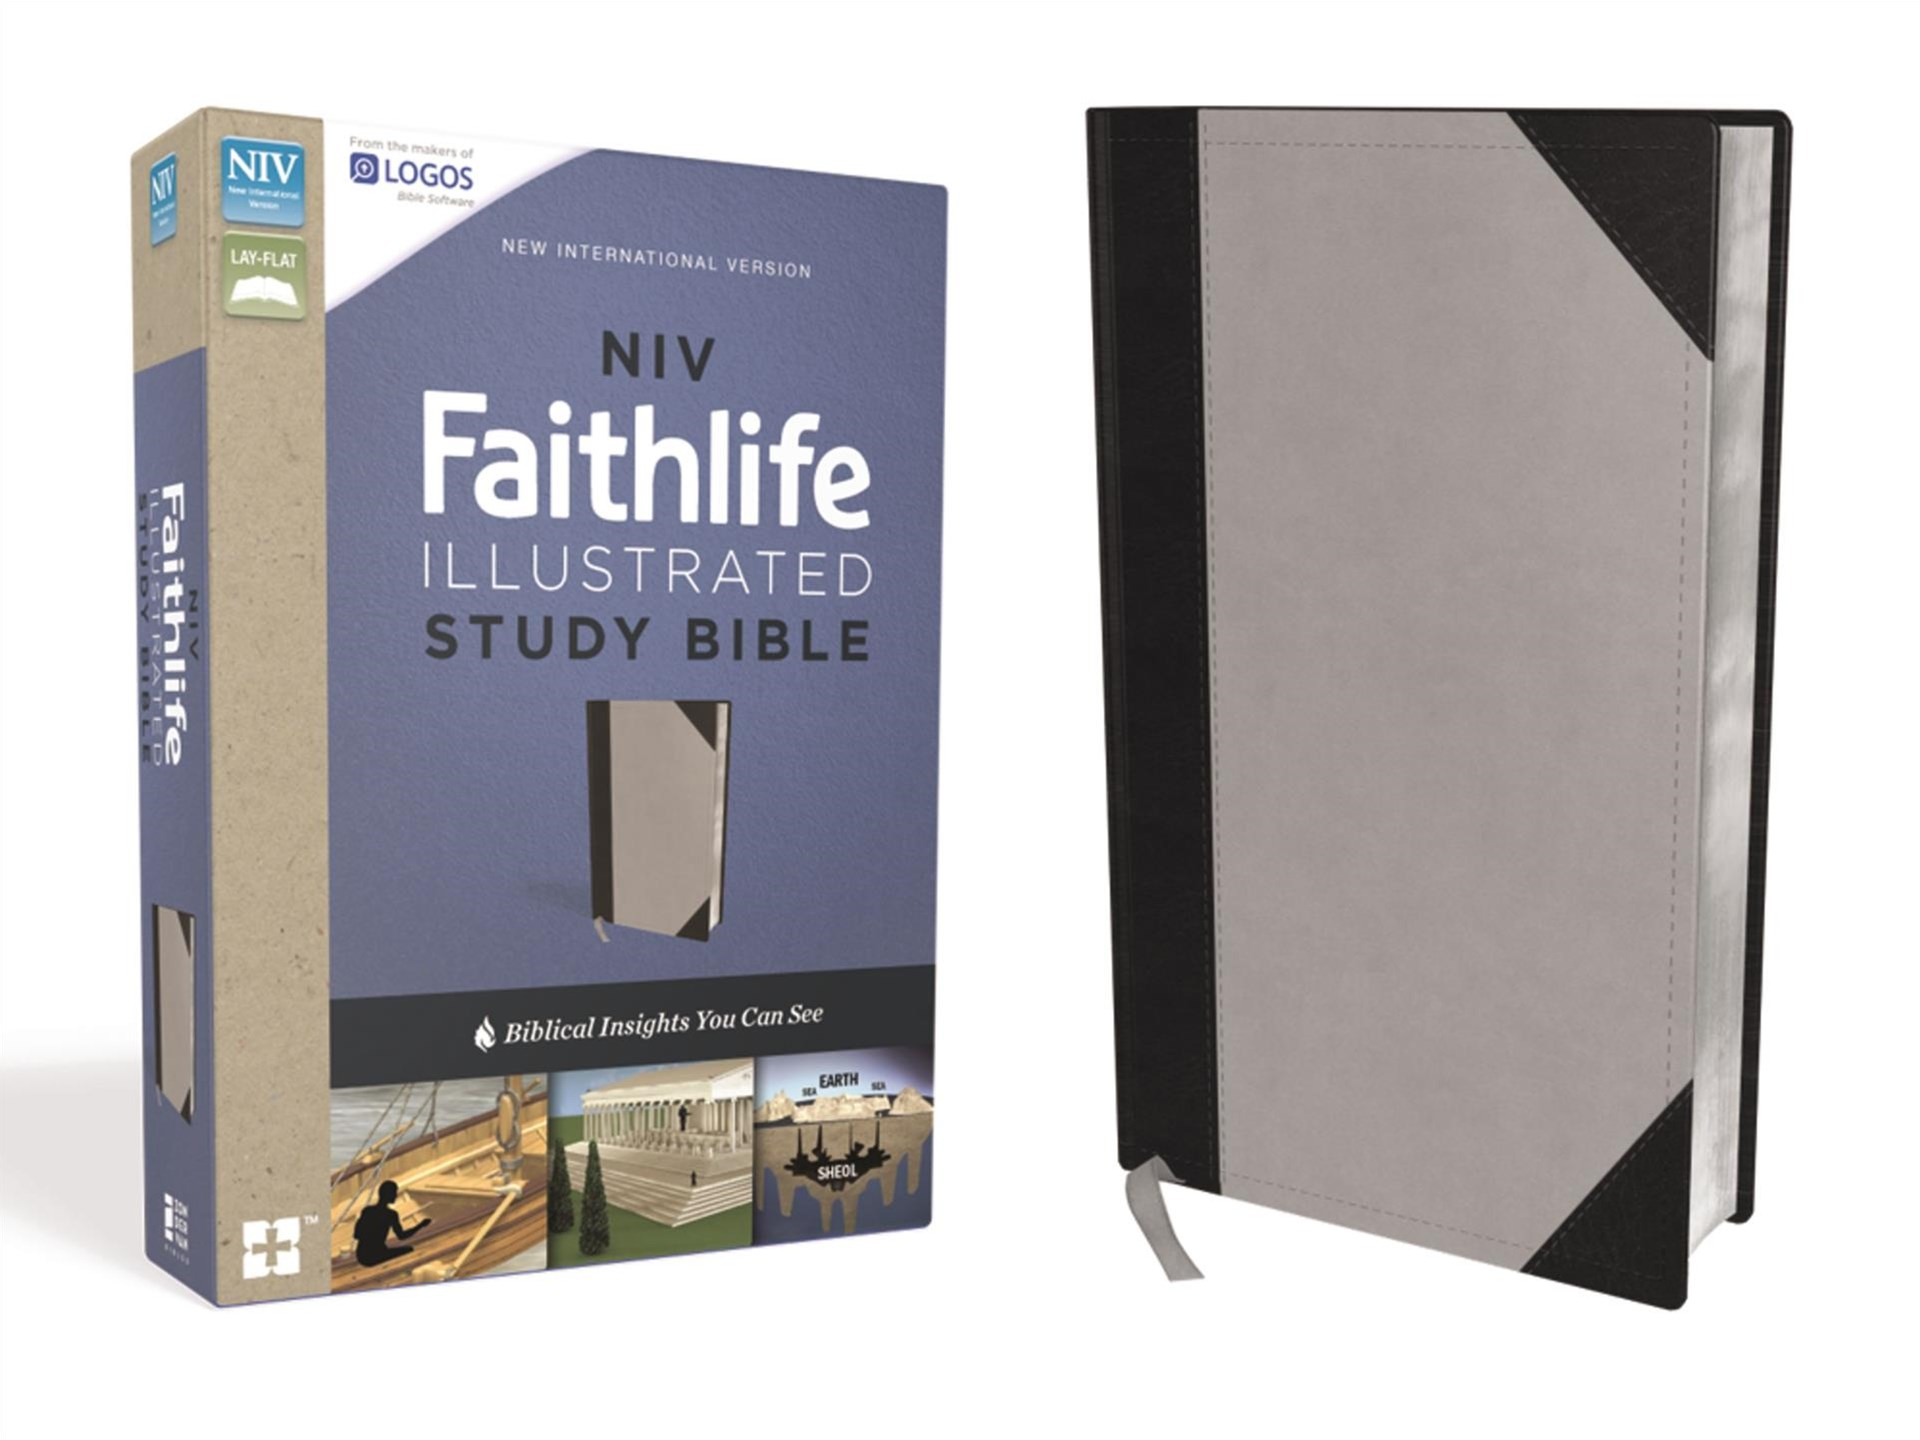 NIV Faithlife Illustrated Study Bible: Biblical Insights You Can See [Grey/Black]